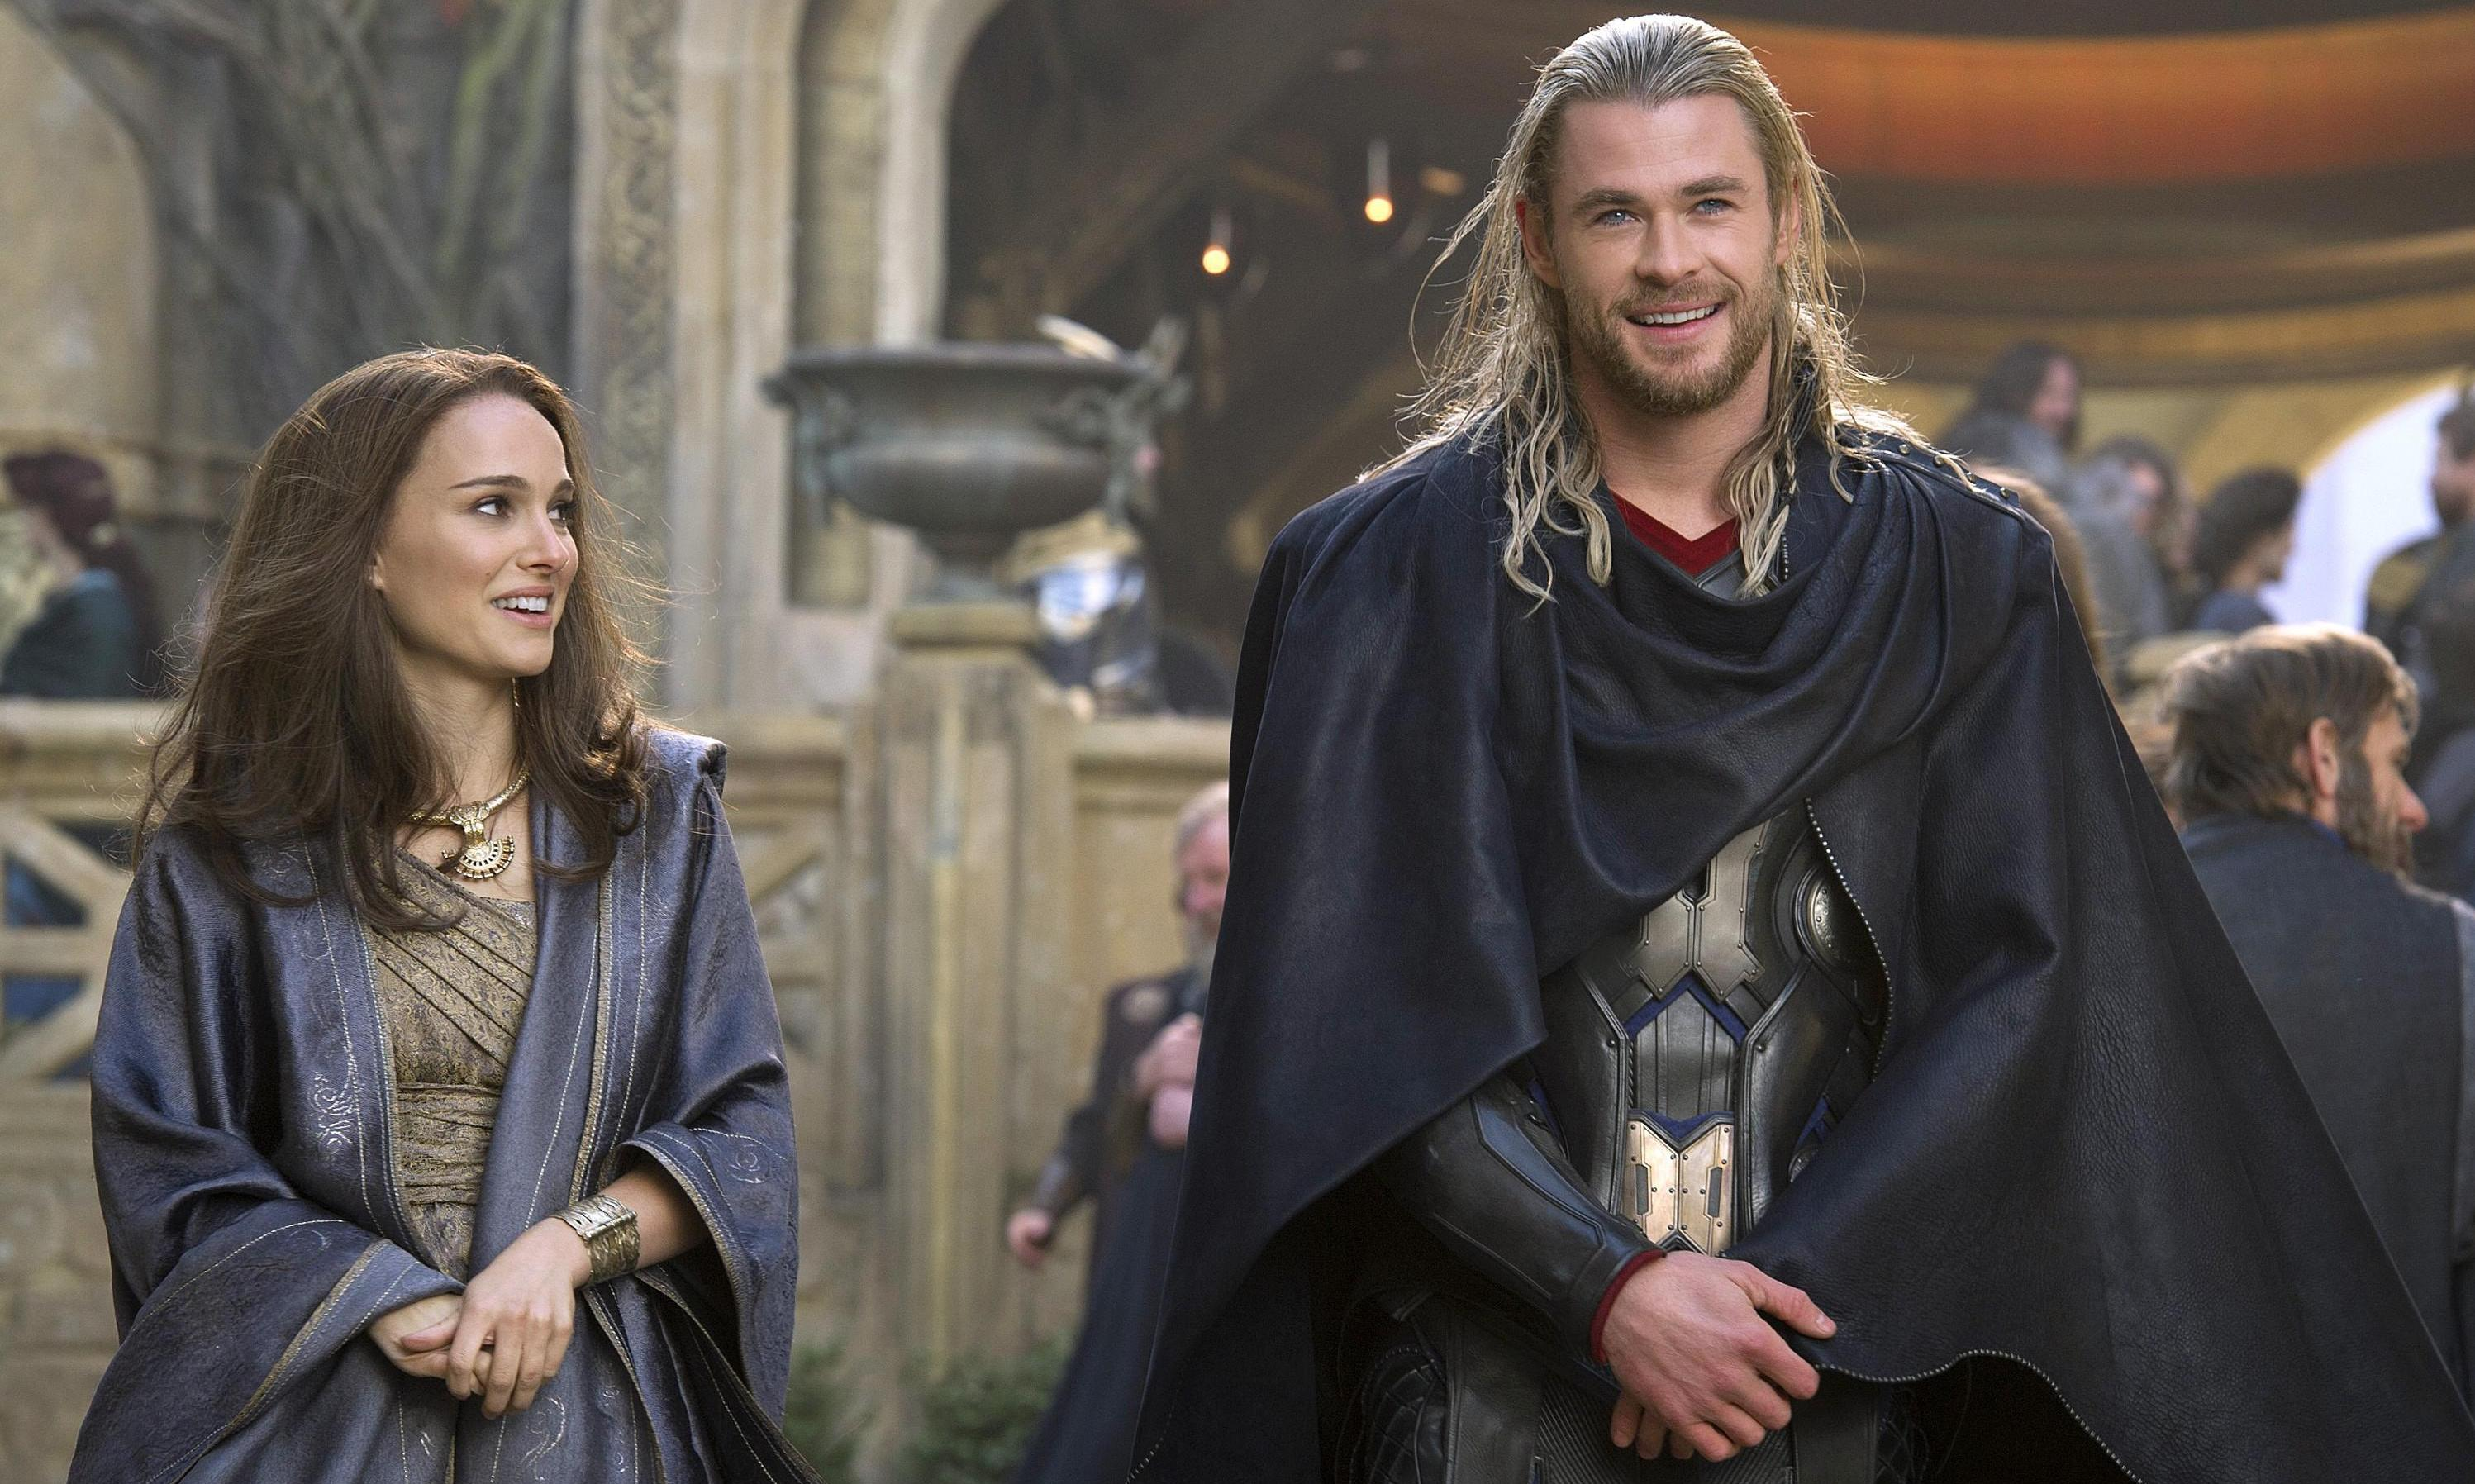 Natalie Portman confirmed as Mighty Thor in Marvel sequel